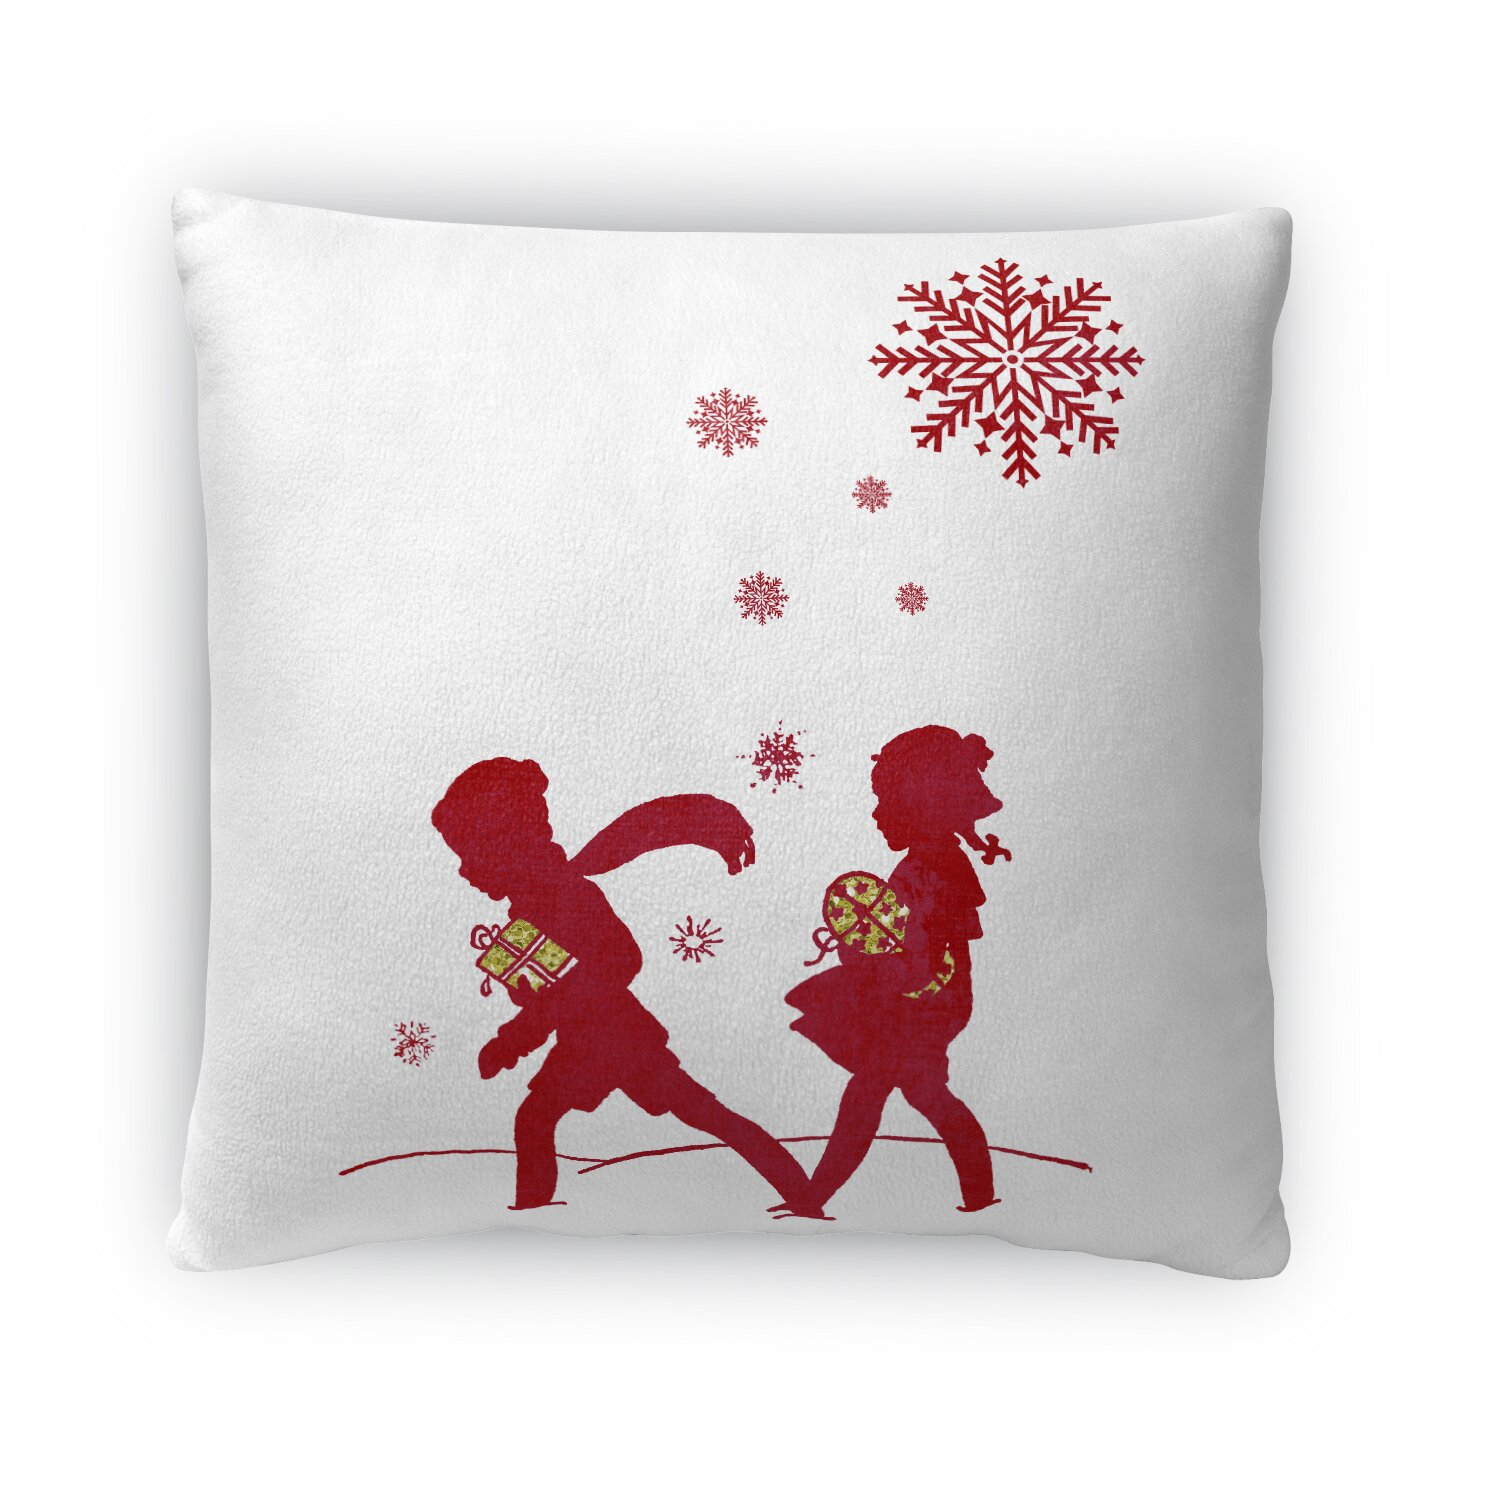 Photo Throw Pillow Gifts : Kavka Bringing the Gifts Fleece Throw Pillow Wayfair.ca